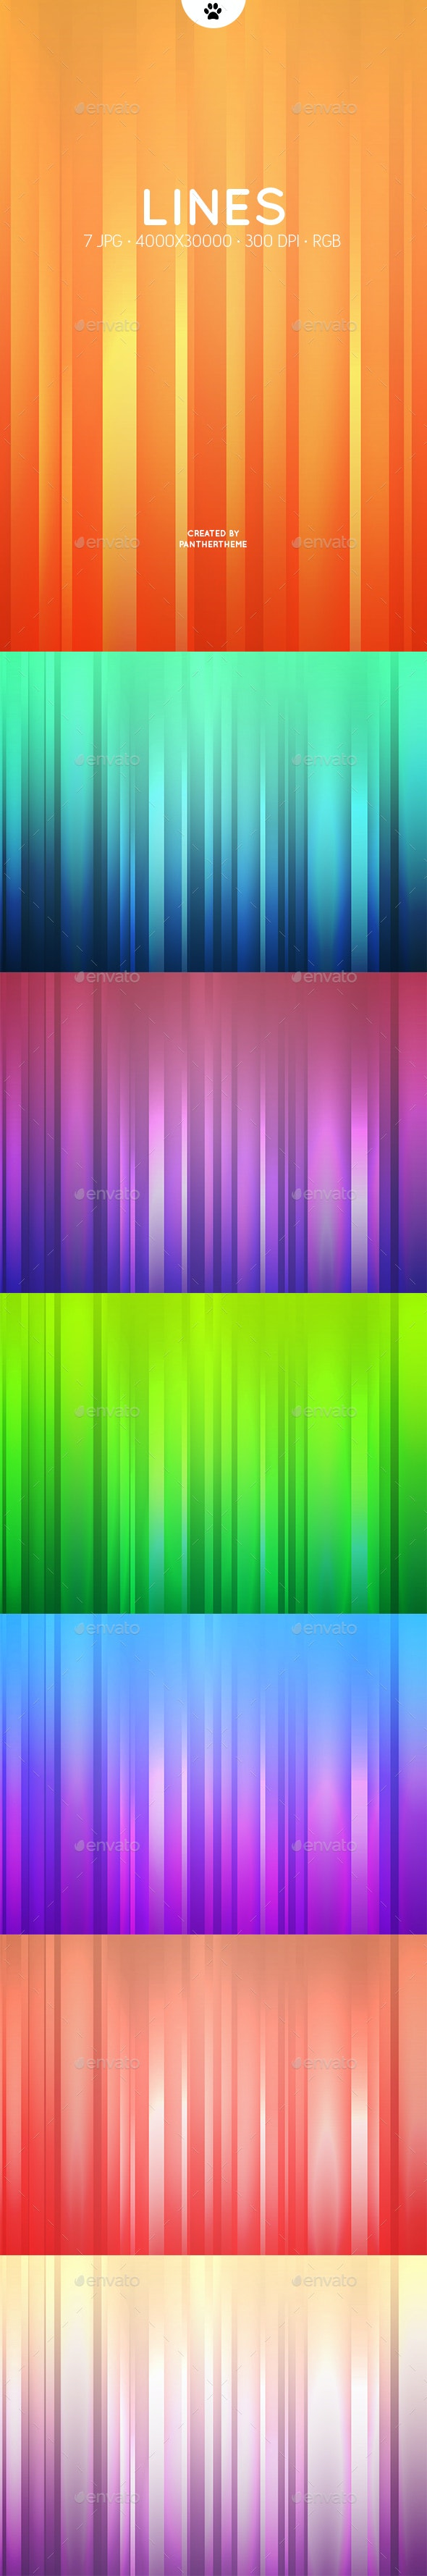 Gradient Lines Backgrounds - Abstract Backgrounds